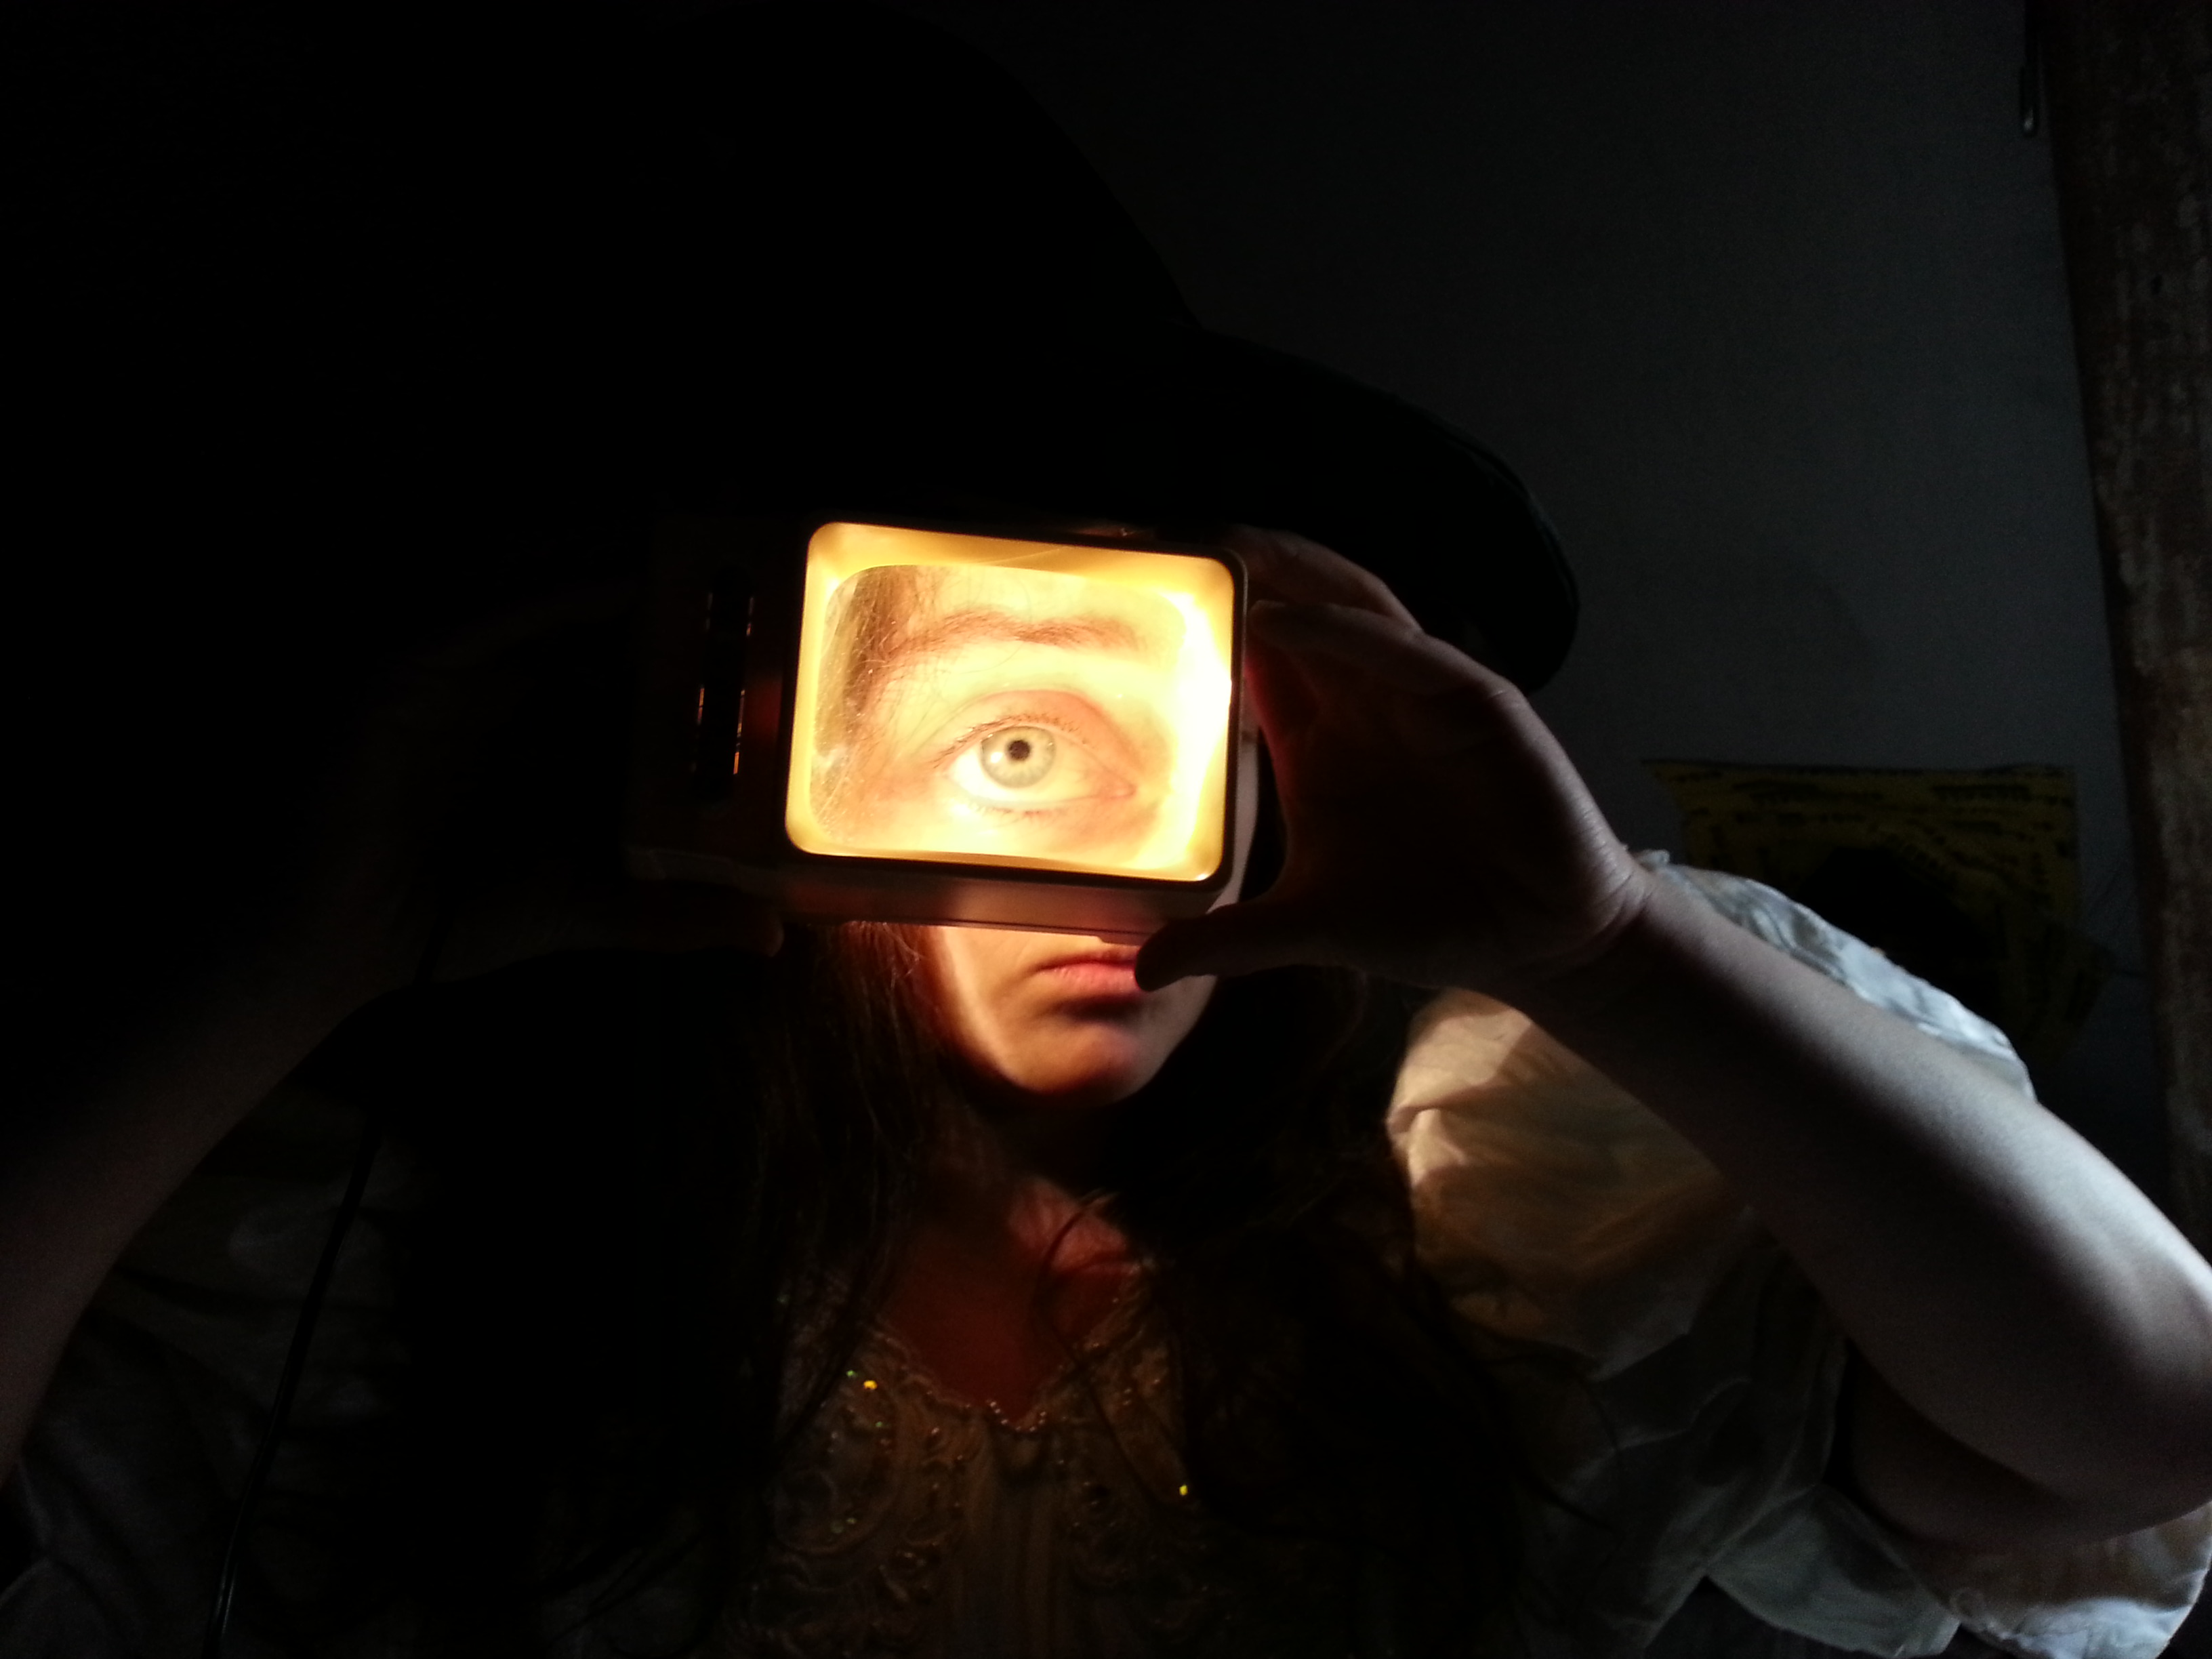 experiment with lookingglass